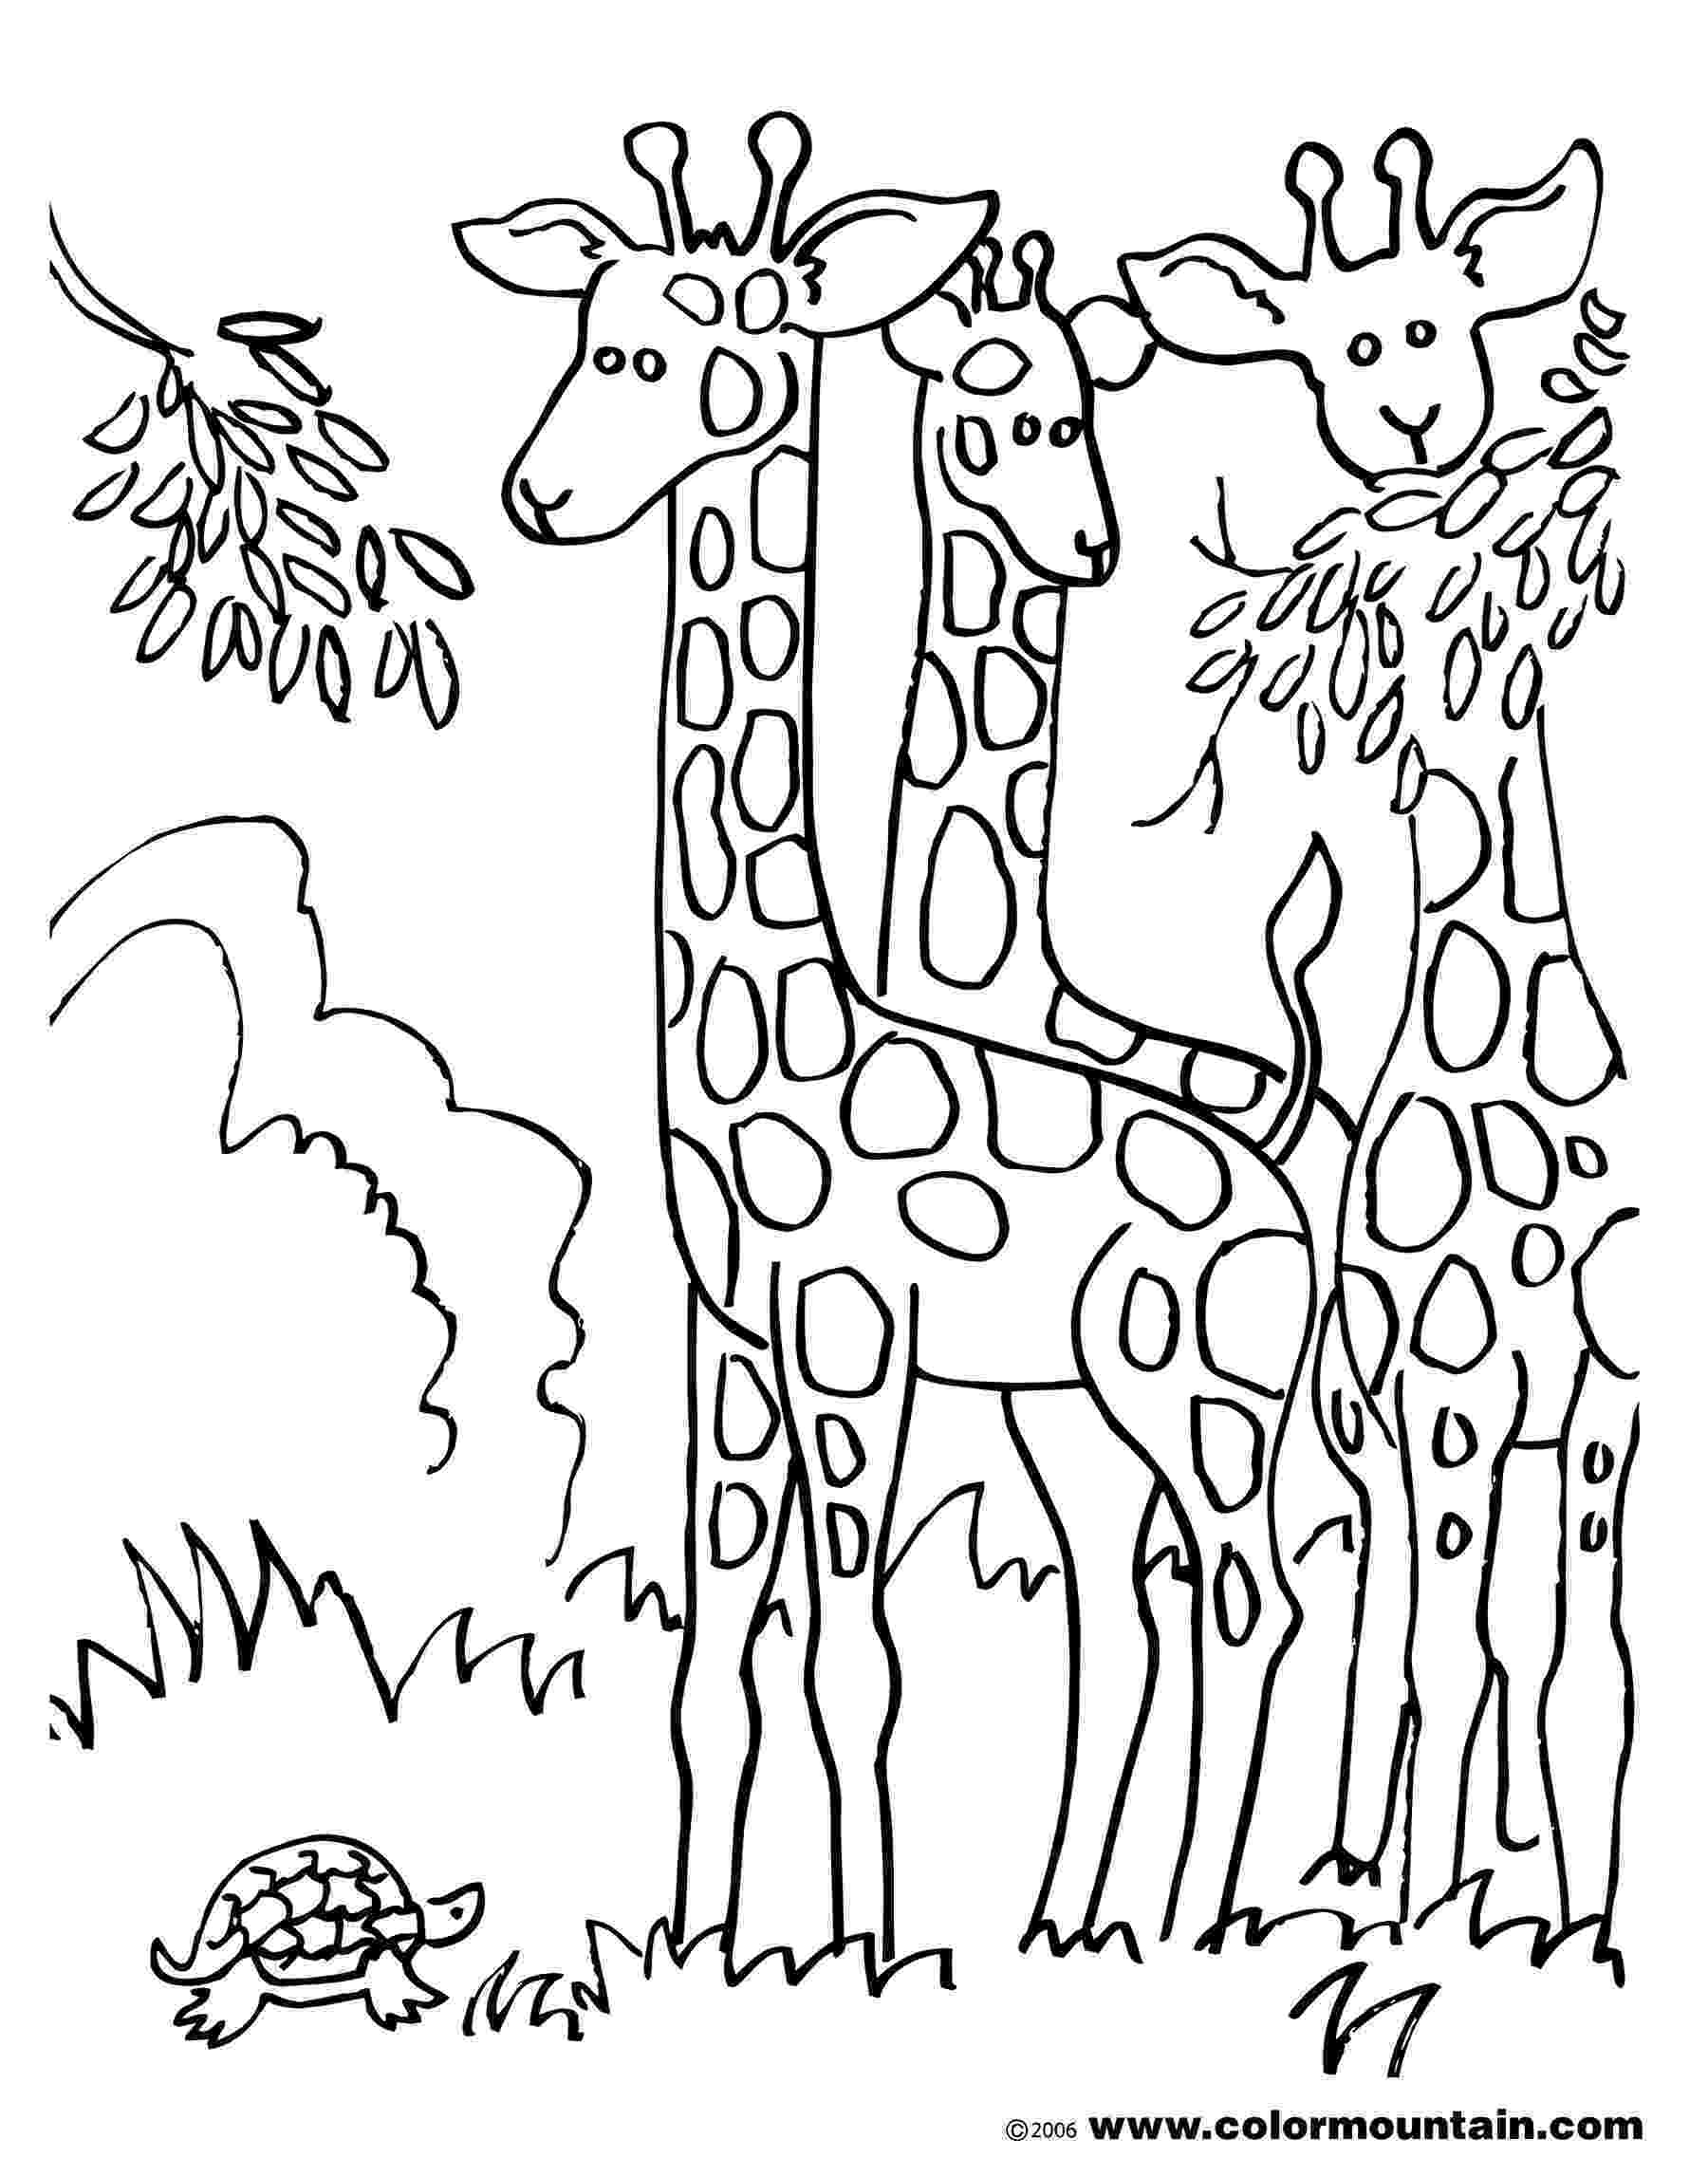 horse herd coloring pages horse herd coloring pages at getcoloringscom free horse herd pages coloring